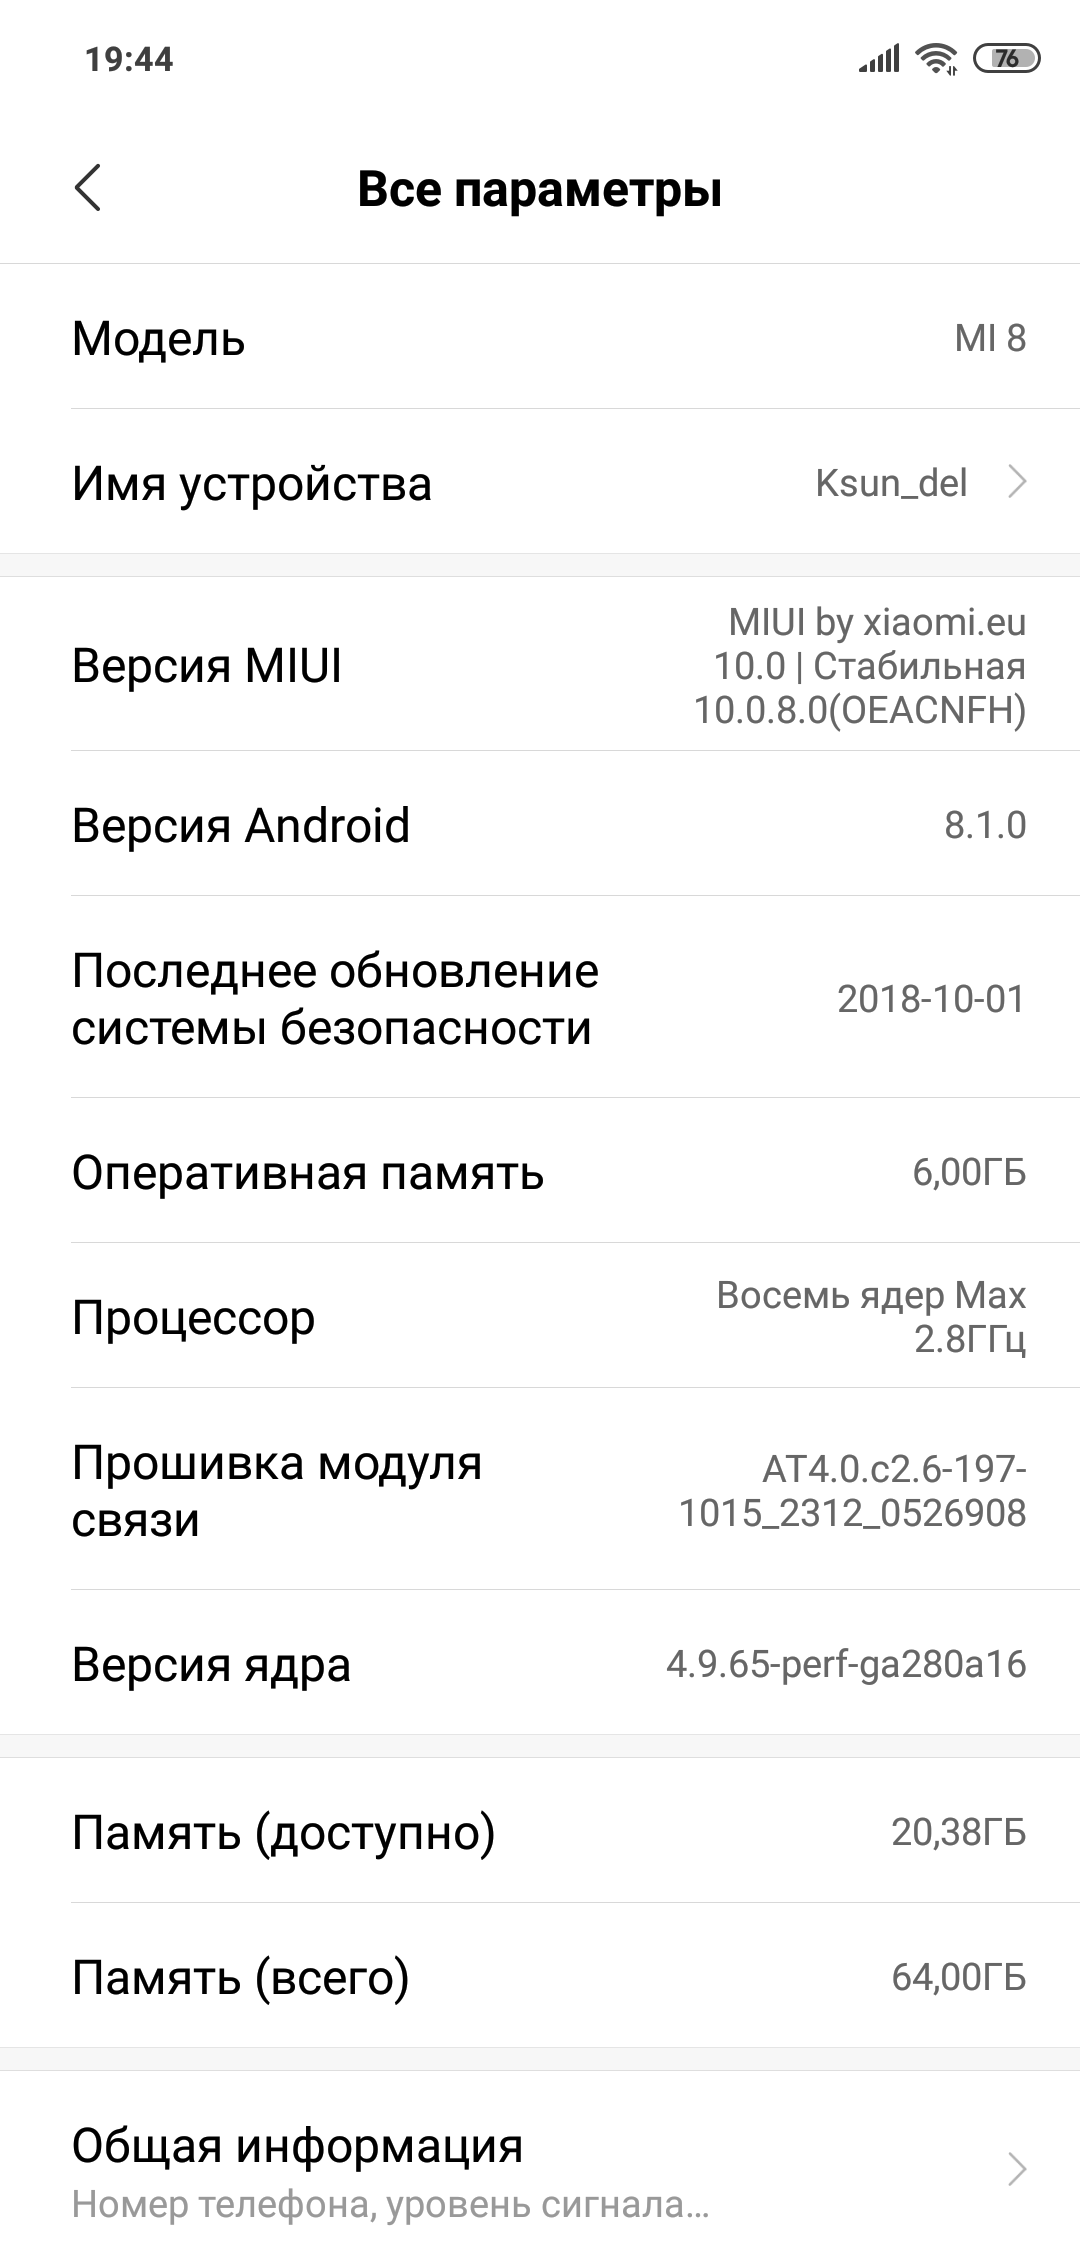 Screenshot_2019-03-17-19-44-39-141_com.android.settings.png